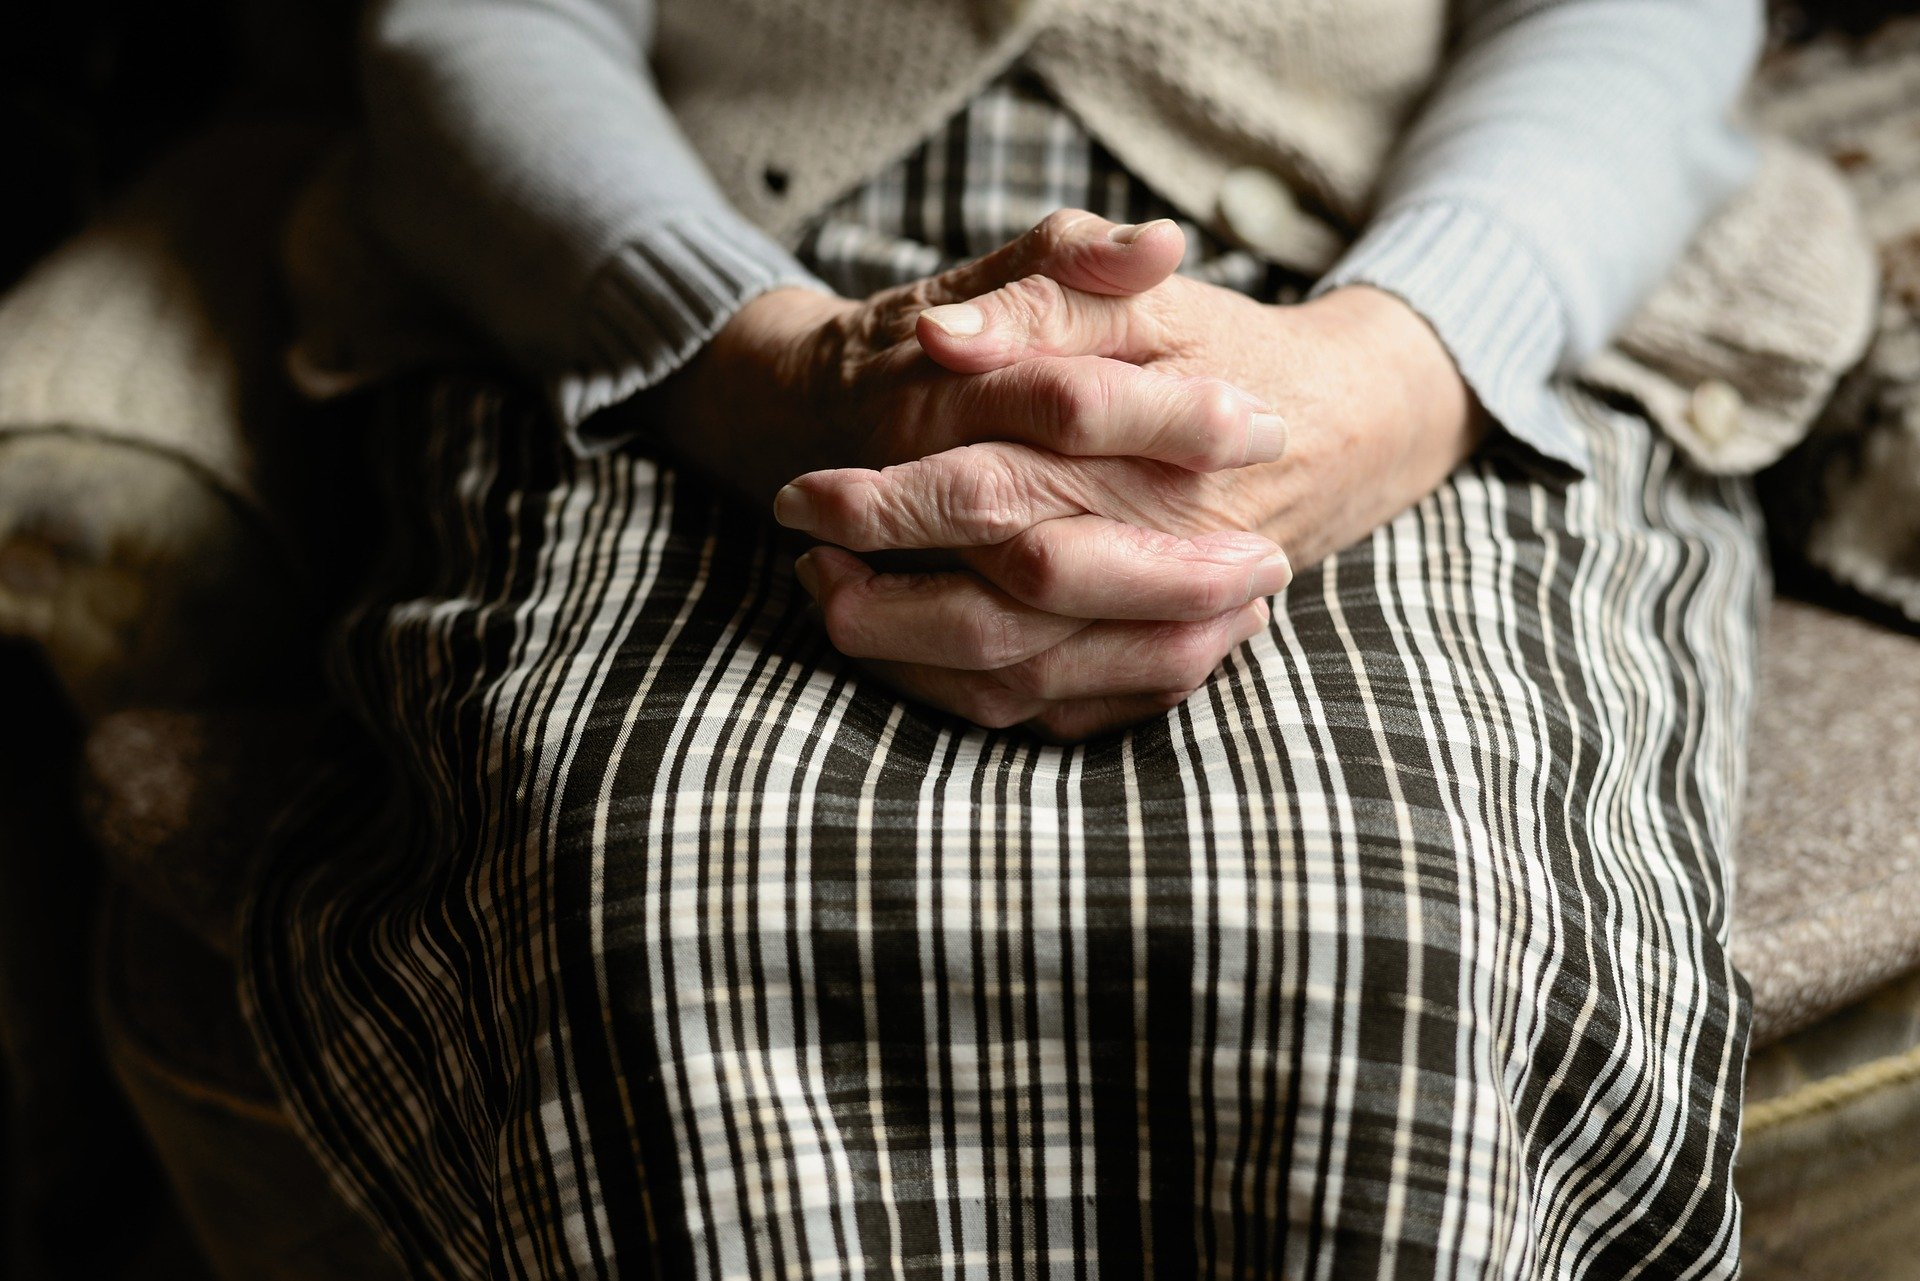 Image of a senior person's hands symbolizing vulnerability to undue influence